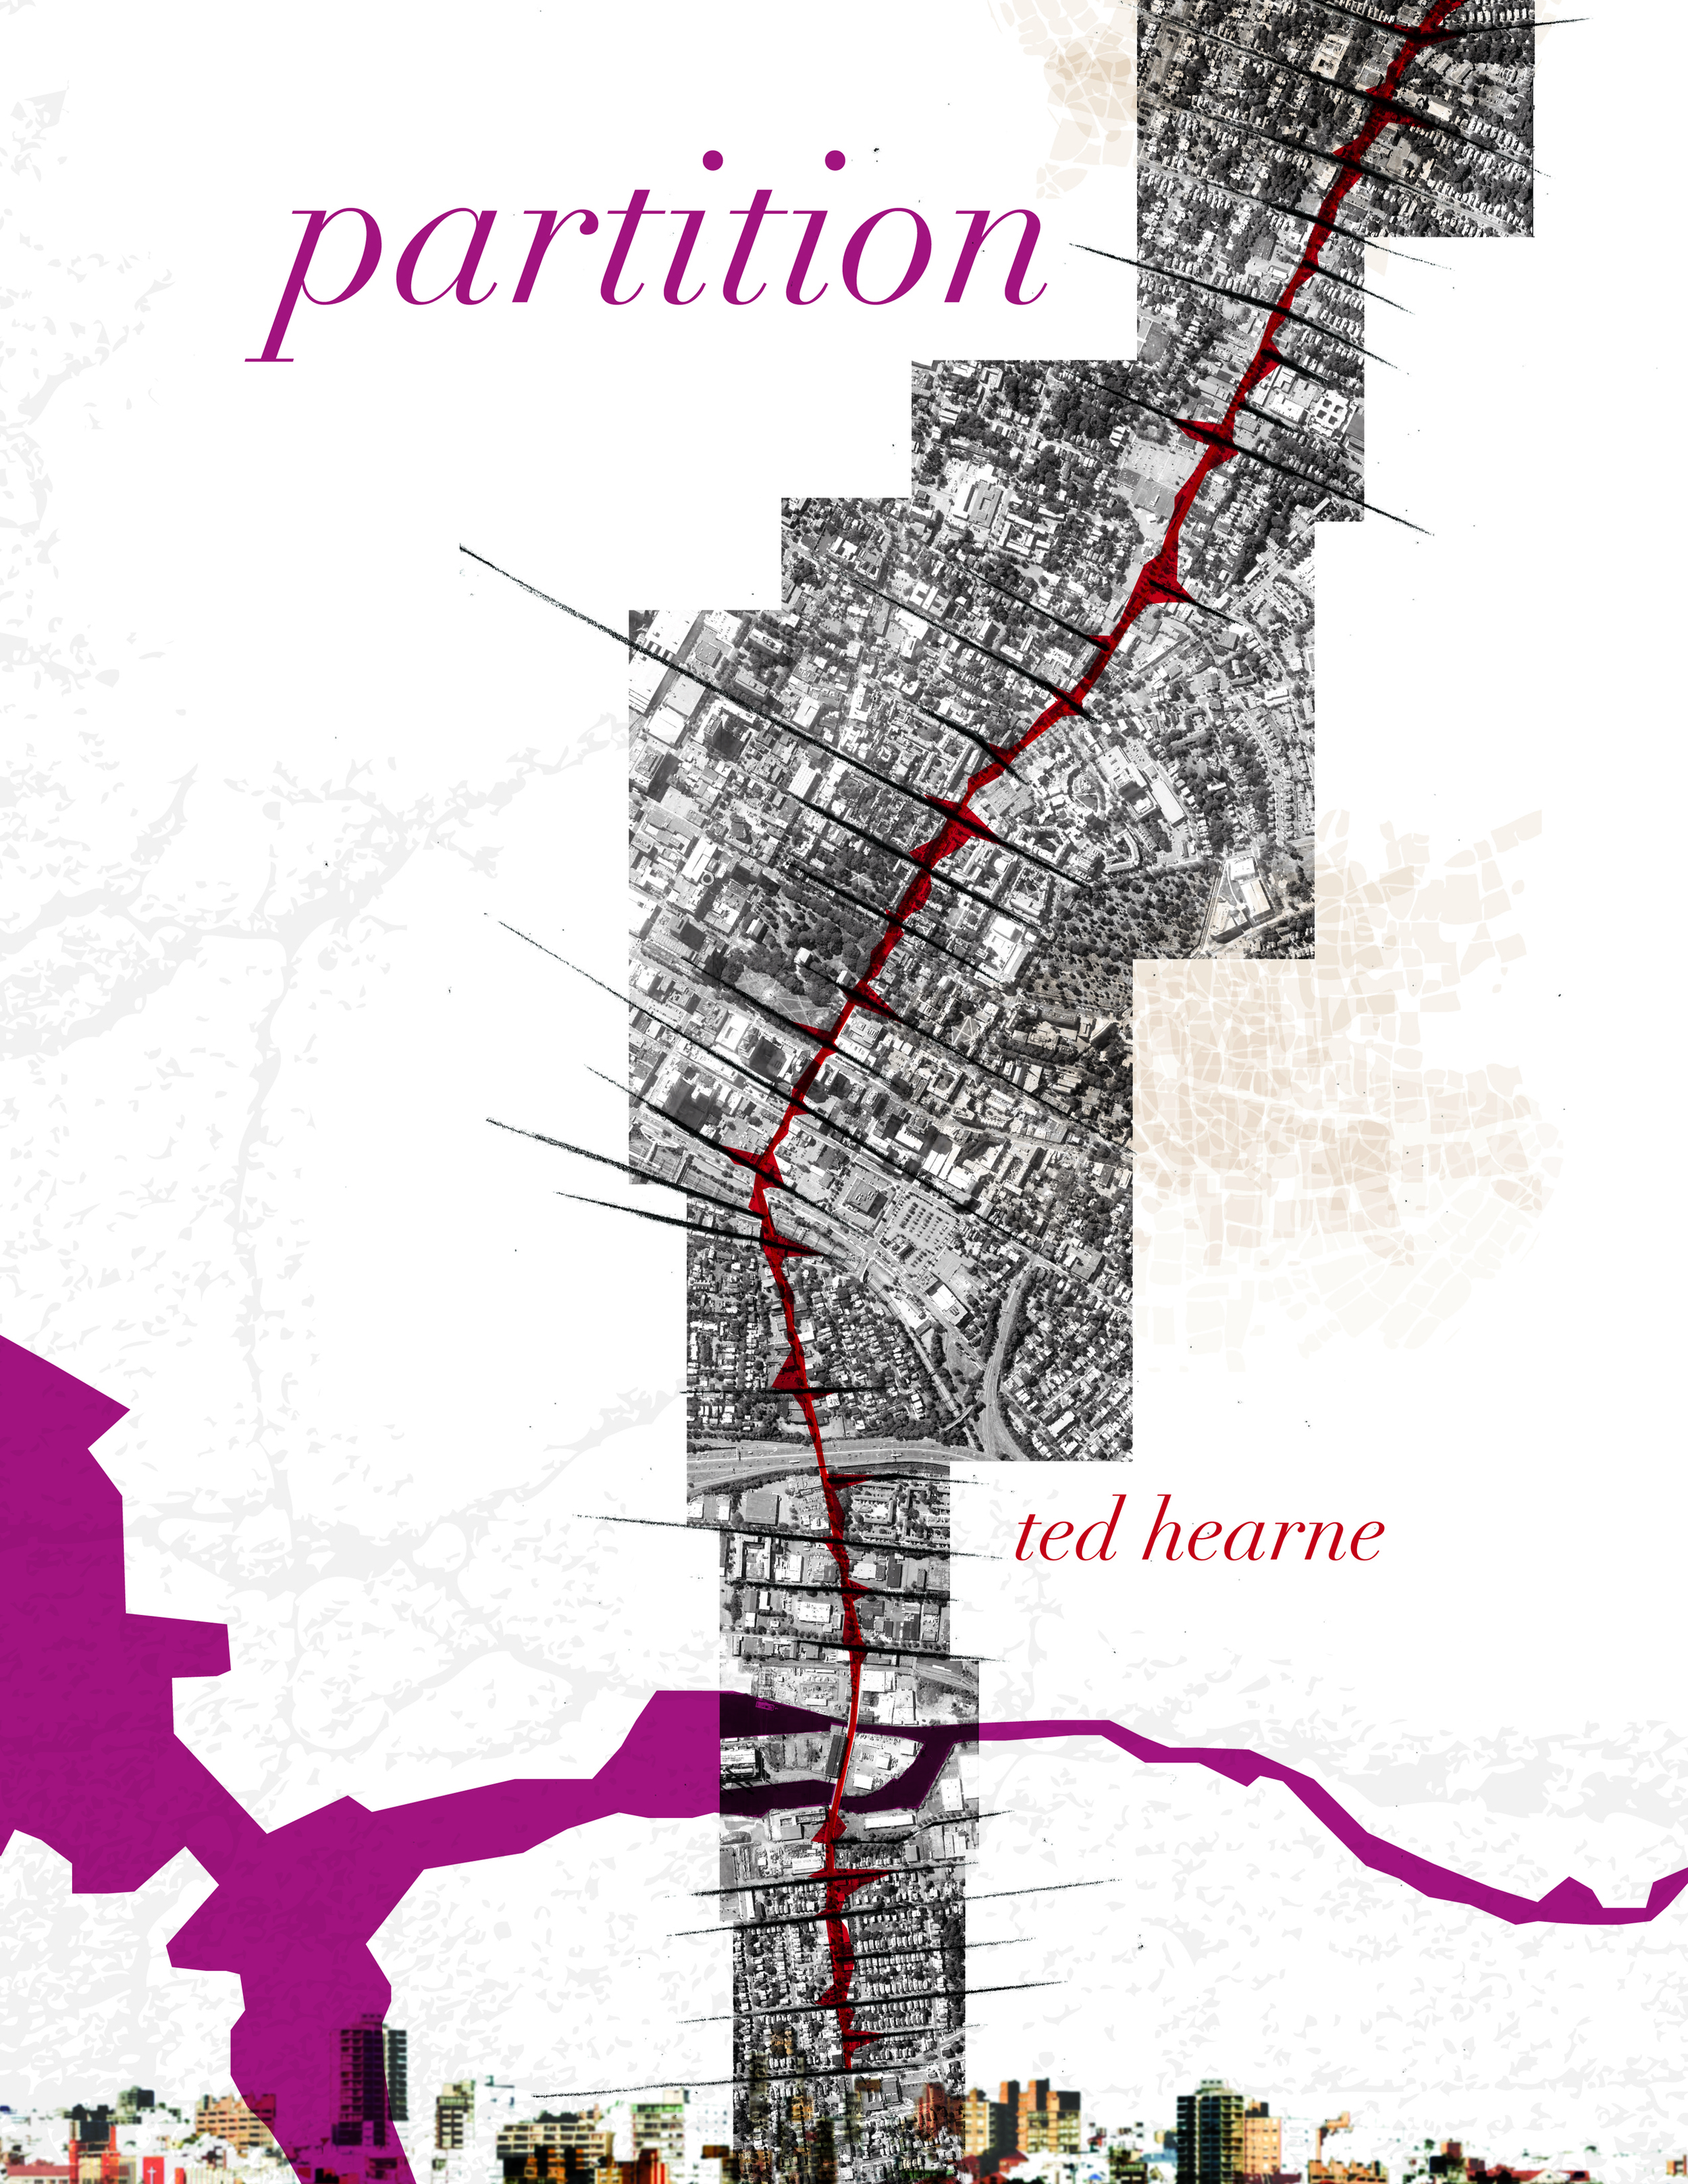 """Partition"" cover design by Emily Weidenhof"